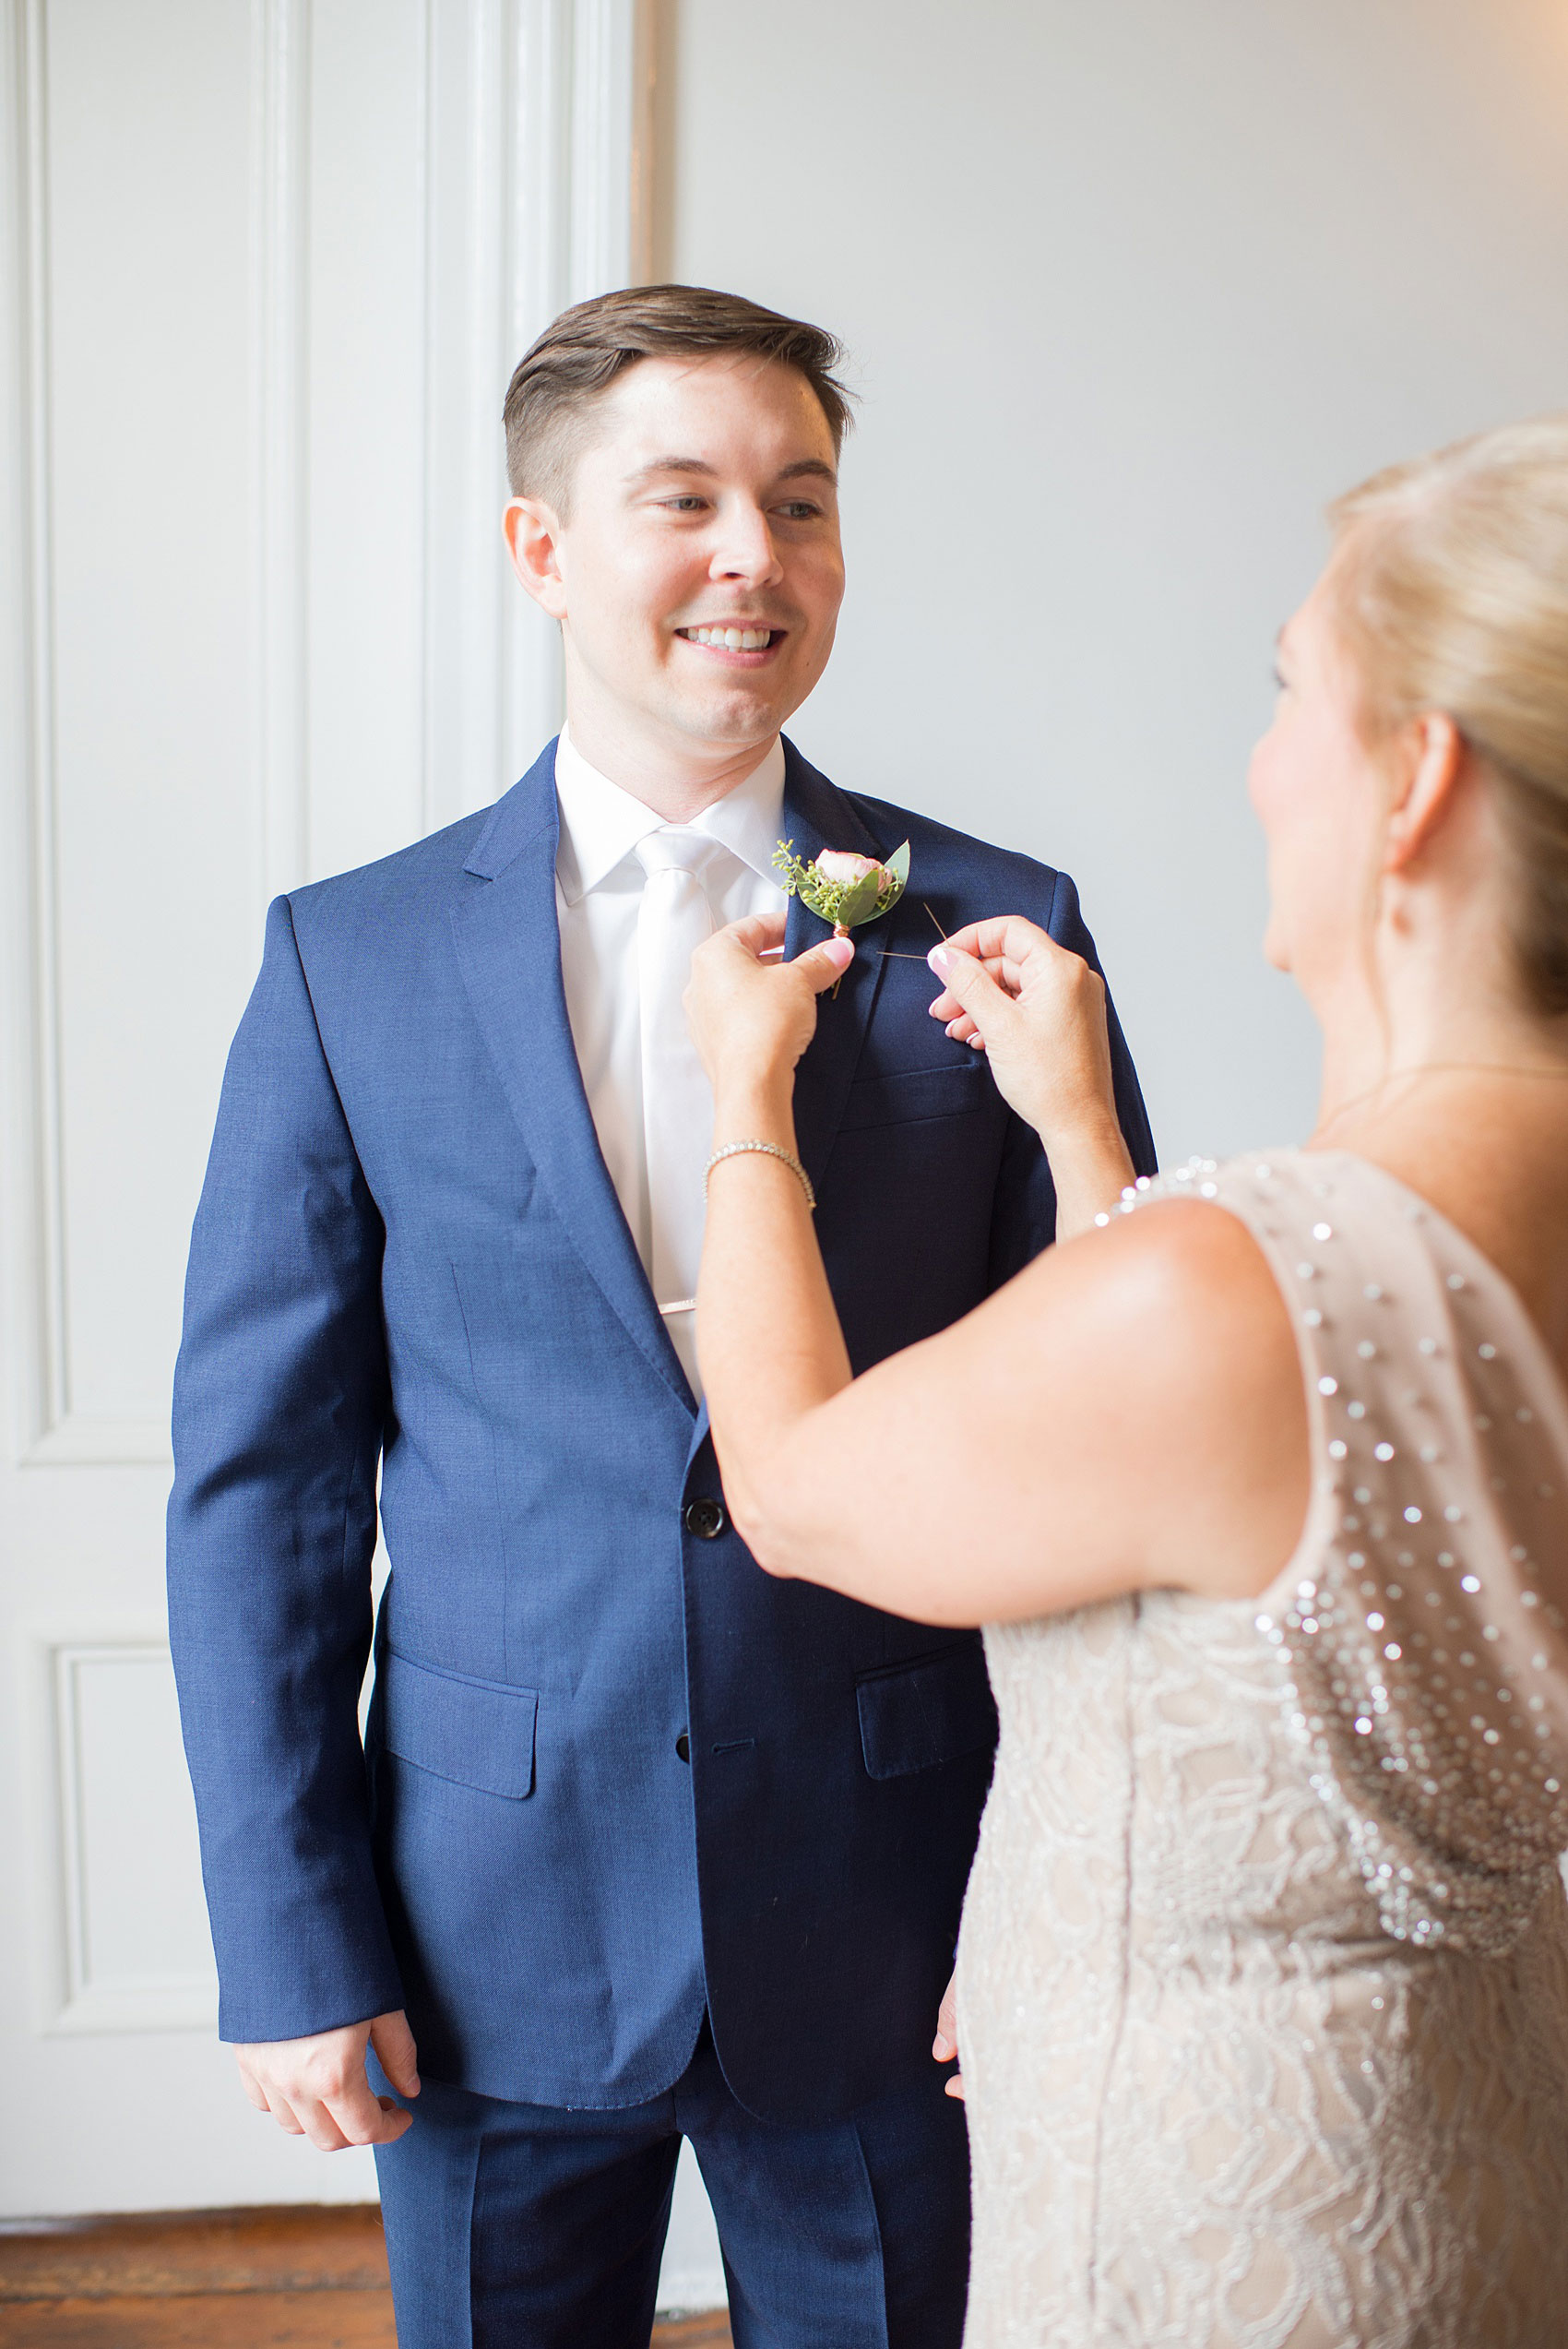 Mikkel Paige Photography pictures from a wedding at Merrimon-Wynne House in Raleigh, NC. Photo of the groom's mother pinning on his boutonniere.